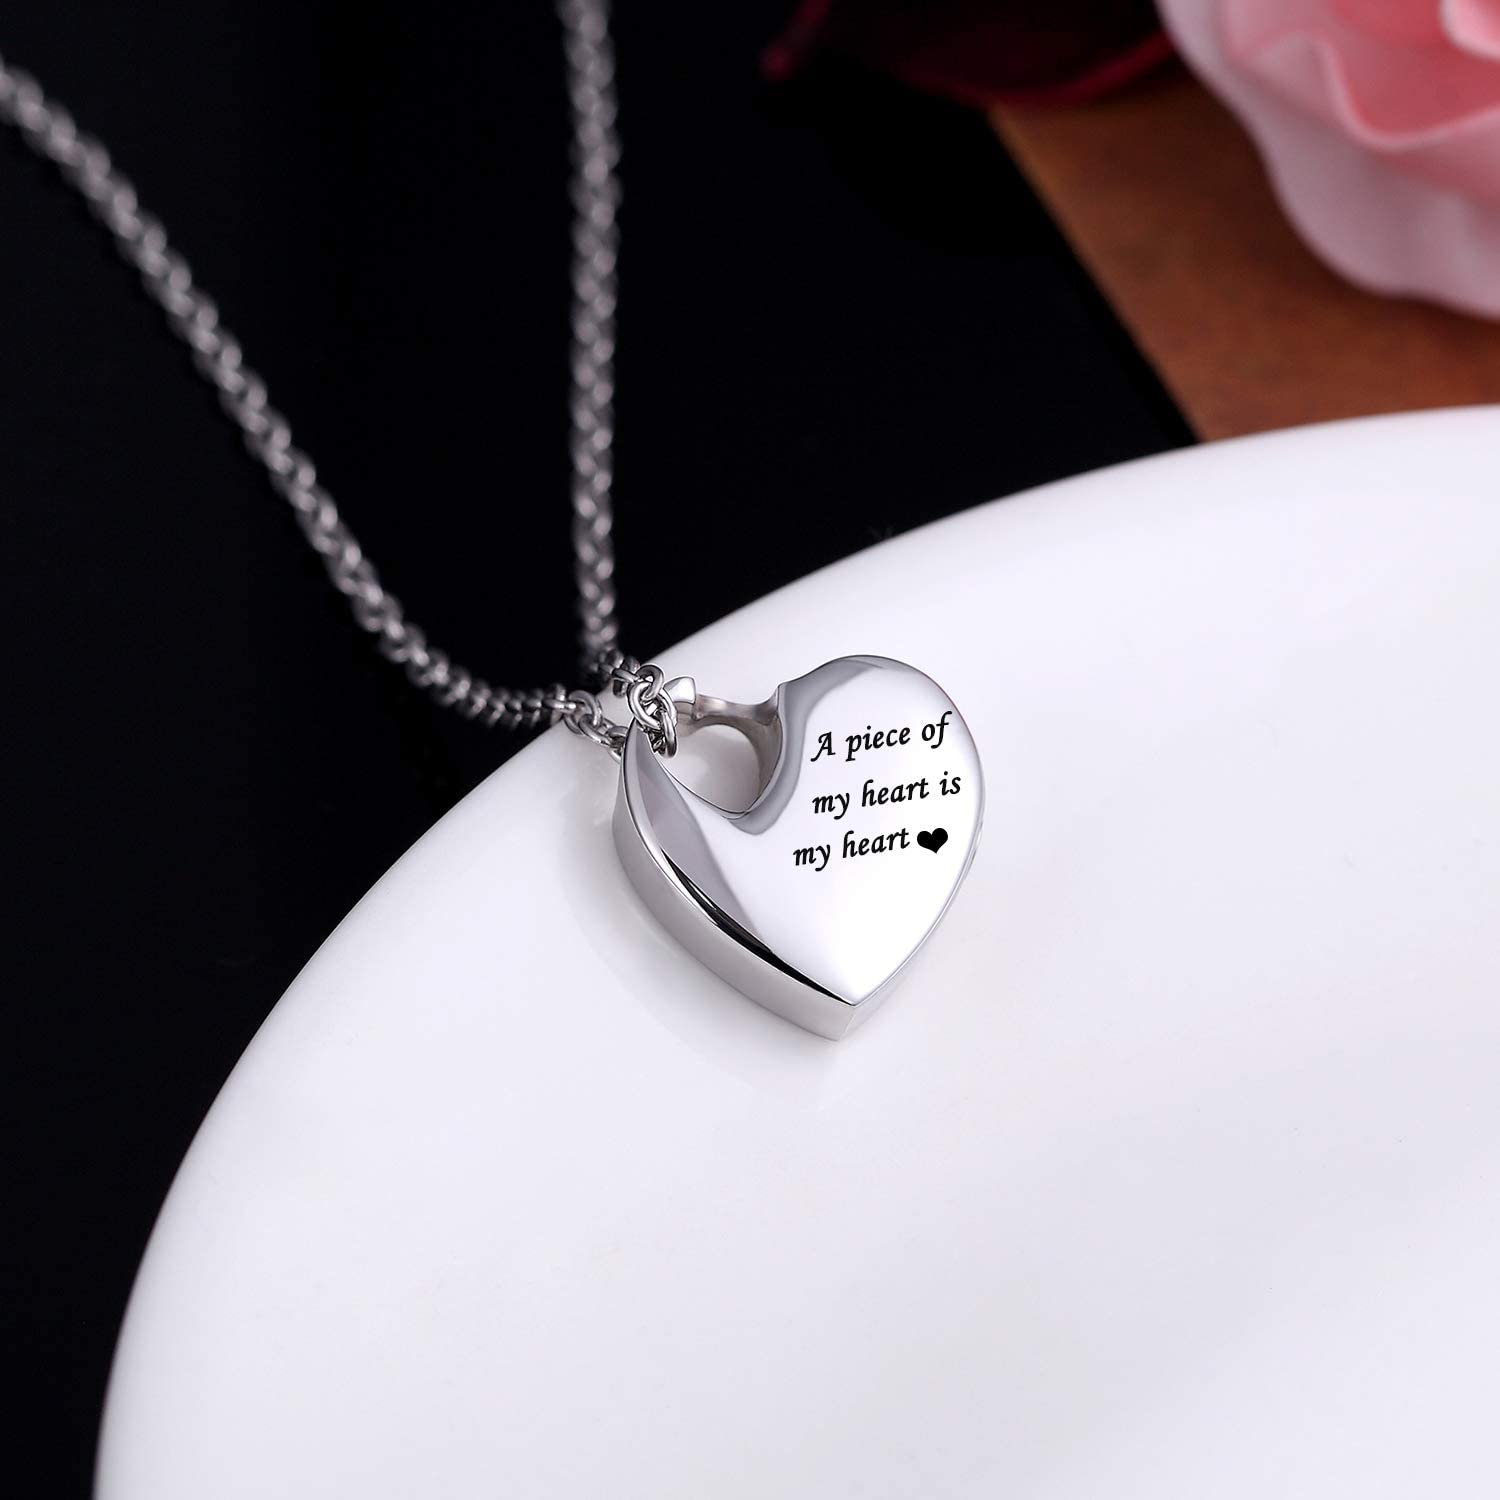 Norya Heart Pendant Cremation Urn Necklace Stainless Steel Keepsake Waterproof Memorial Jewelry